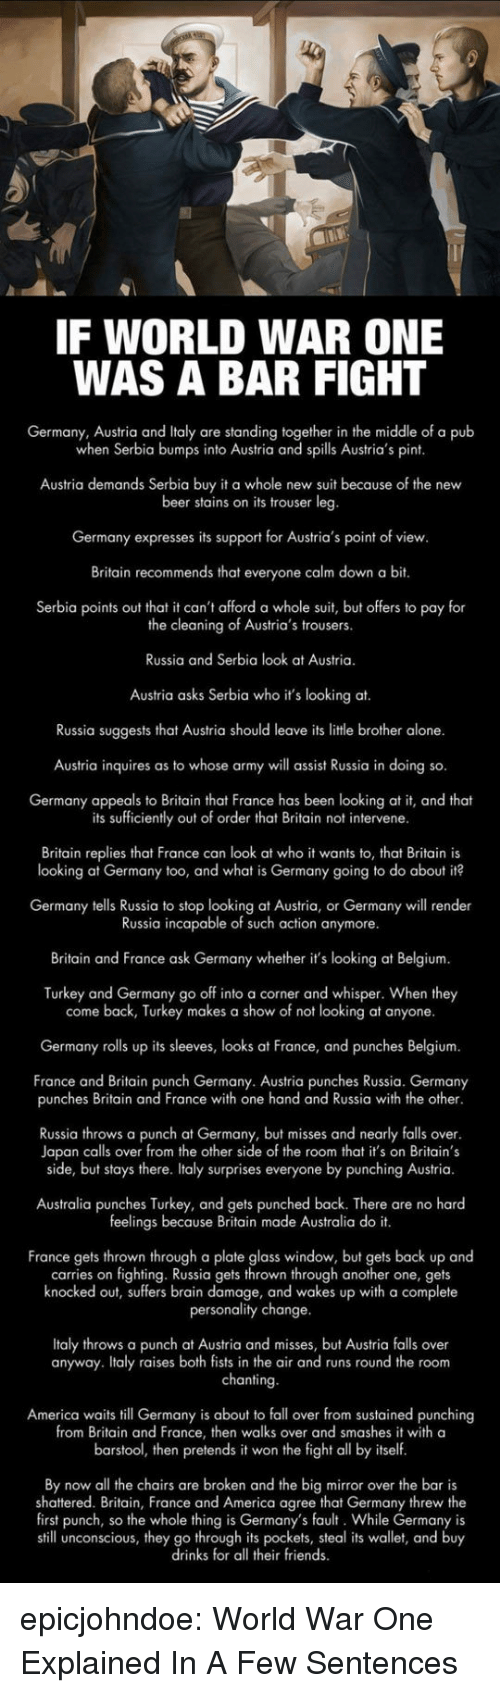 fall over: IF WORLD WAR ONE  WAS A BAR FIGHT  Germany, Austria and Italy are standing together in the middle of a pub  when Serbia bumps into Austria and spills Austria's pint  Austria demands Serbia buy it a whole new suit because of the new  beer stains on its trouser leg  Germany expresses its support for Austria's point of view  Britain recommends that everyone calm down a bit.  Serbia points out that it can't afford a whole suit, but offers to pay for  the cleaning of Austria's trousers.  Russia and Serbia look at Austria.  Austria asks Serbia who it's looking at.  Russia suggests that Austria should leave its litle brother alone.  Austria inquires as to whose army will assist Russia in doing so.  Germany appeals to Britain that France has been looking at it, and theat  its sufficiently out of order that Britain not intervene  Britain replies that France can look at who it wants to, that Britain is  looking at Germany too, and what is Germany going to do about it?  Germany tells Russia to stop looking at Austria, or Germany will render  Russia incapable of such action anymore.  Britain and France ask Germany whether it's looking at Belgium  Turkey and Germany go off into a corner and whisper. When they  come back, Turkey makes a show of not looking at anyone.  Germany rolls up its sleeves, looks at France, and punches Belgium.  France and Britain punch Germany. Austria punches Russia. Germany  punches Britain and France with one hand and Russia with the other  Russia throws a punch at Germany, but misses and nearly falls over  Japan calls over from the other side of the room that it's on Britain's  side, but stays there. Italy surprises everyone by punching Austria.  Australia punches Turkey, and gets punched back. There are no hard  feelings because Britain made Australia do it.  France gets thrown through a plate glass window, but gets back up and  carries on fighting. Russia gets thrown through another one, gets  knocked out, suffers brain damage, and wakes up with a complete  personality change  Italy throws a punch at Austria and misses, but Austria falls over  anyway. Italy raises both fists in the air and runs round the room  chanting  America waits till Germany is about to fall over from sustained punching  from Britain and France, then walks over and smashes it with a  barstool, then pretends it won the fight all by itself  By now all the chairs are broken and the big mirror over the bar is  shattered. Britain, France and America agree that Germany threw the  first punch, so the whole thing is Germany's fault. While Germany is  still unconscious, they go through its pockets, steal its wallet, and buy  drinks for all their friends epicjohndoe:  World War One Explained In A Few Sentences